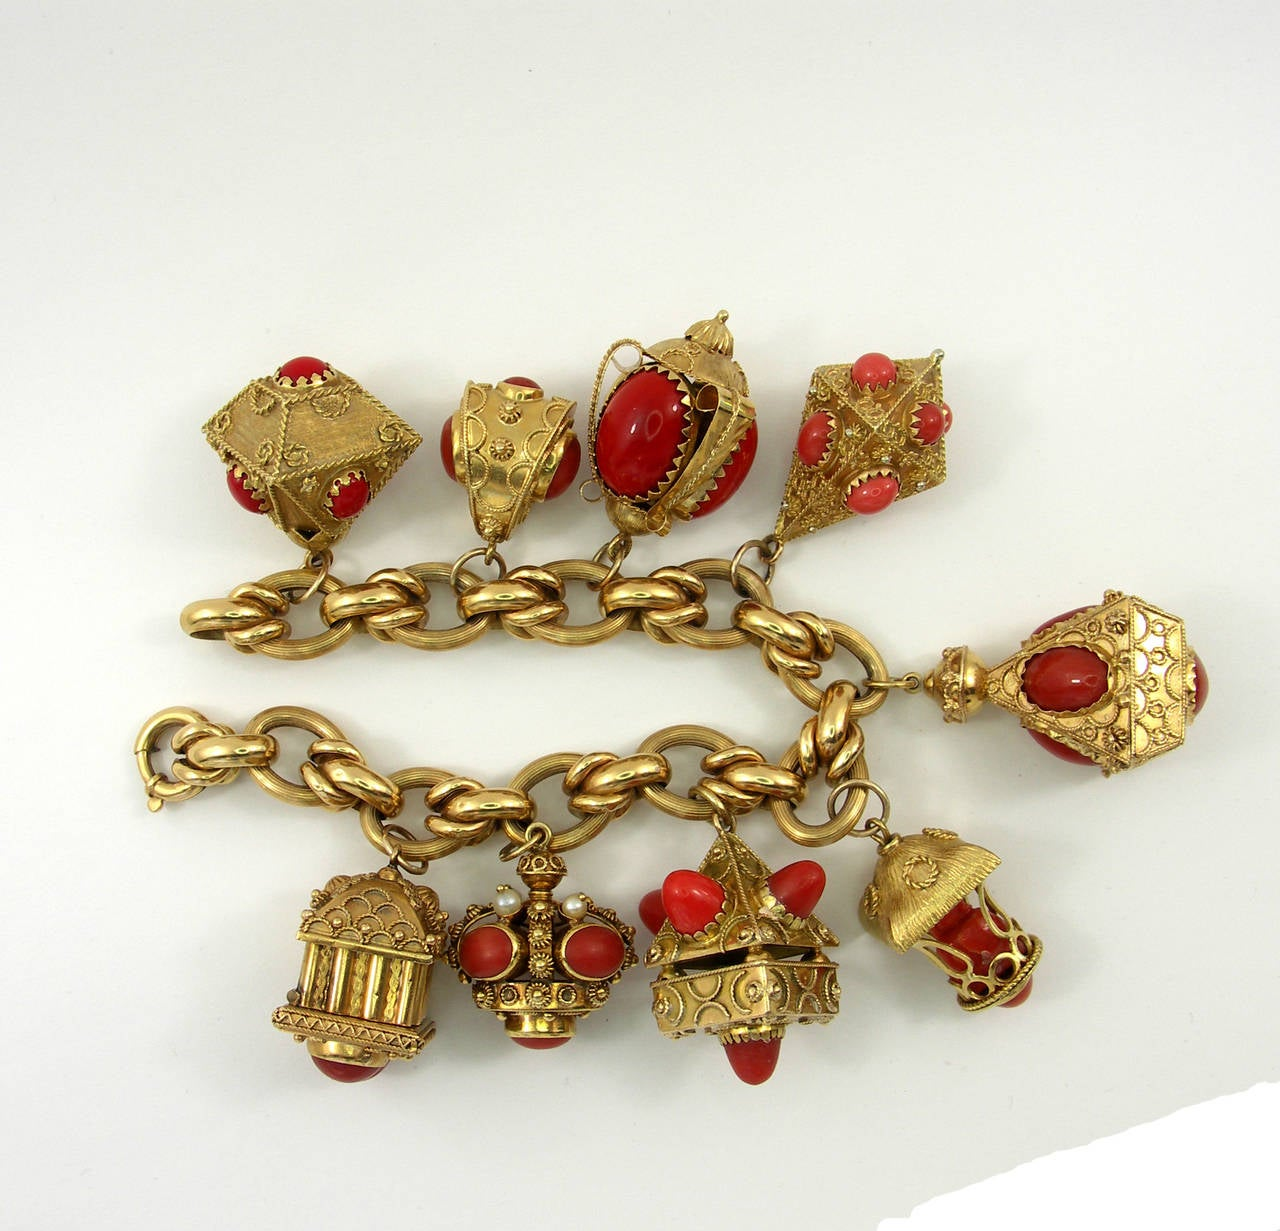 1960s italian gold coral charm bracelet for sale at 1stdibs